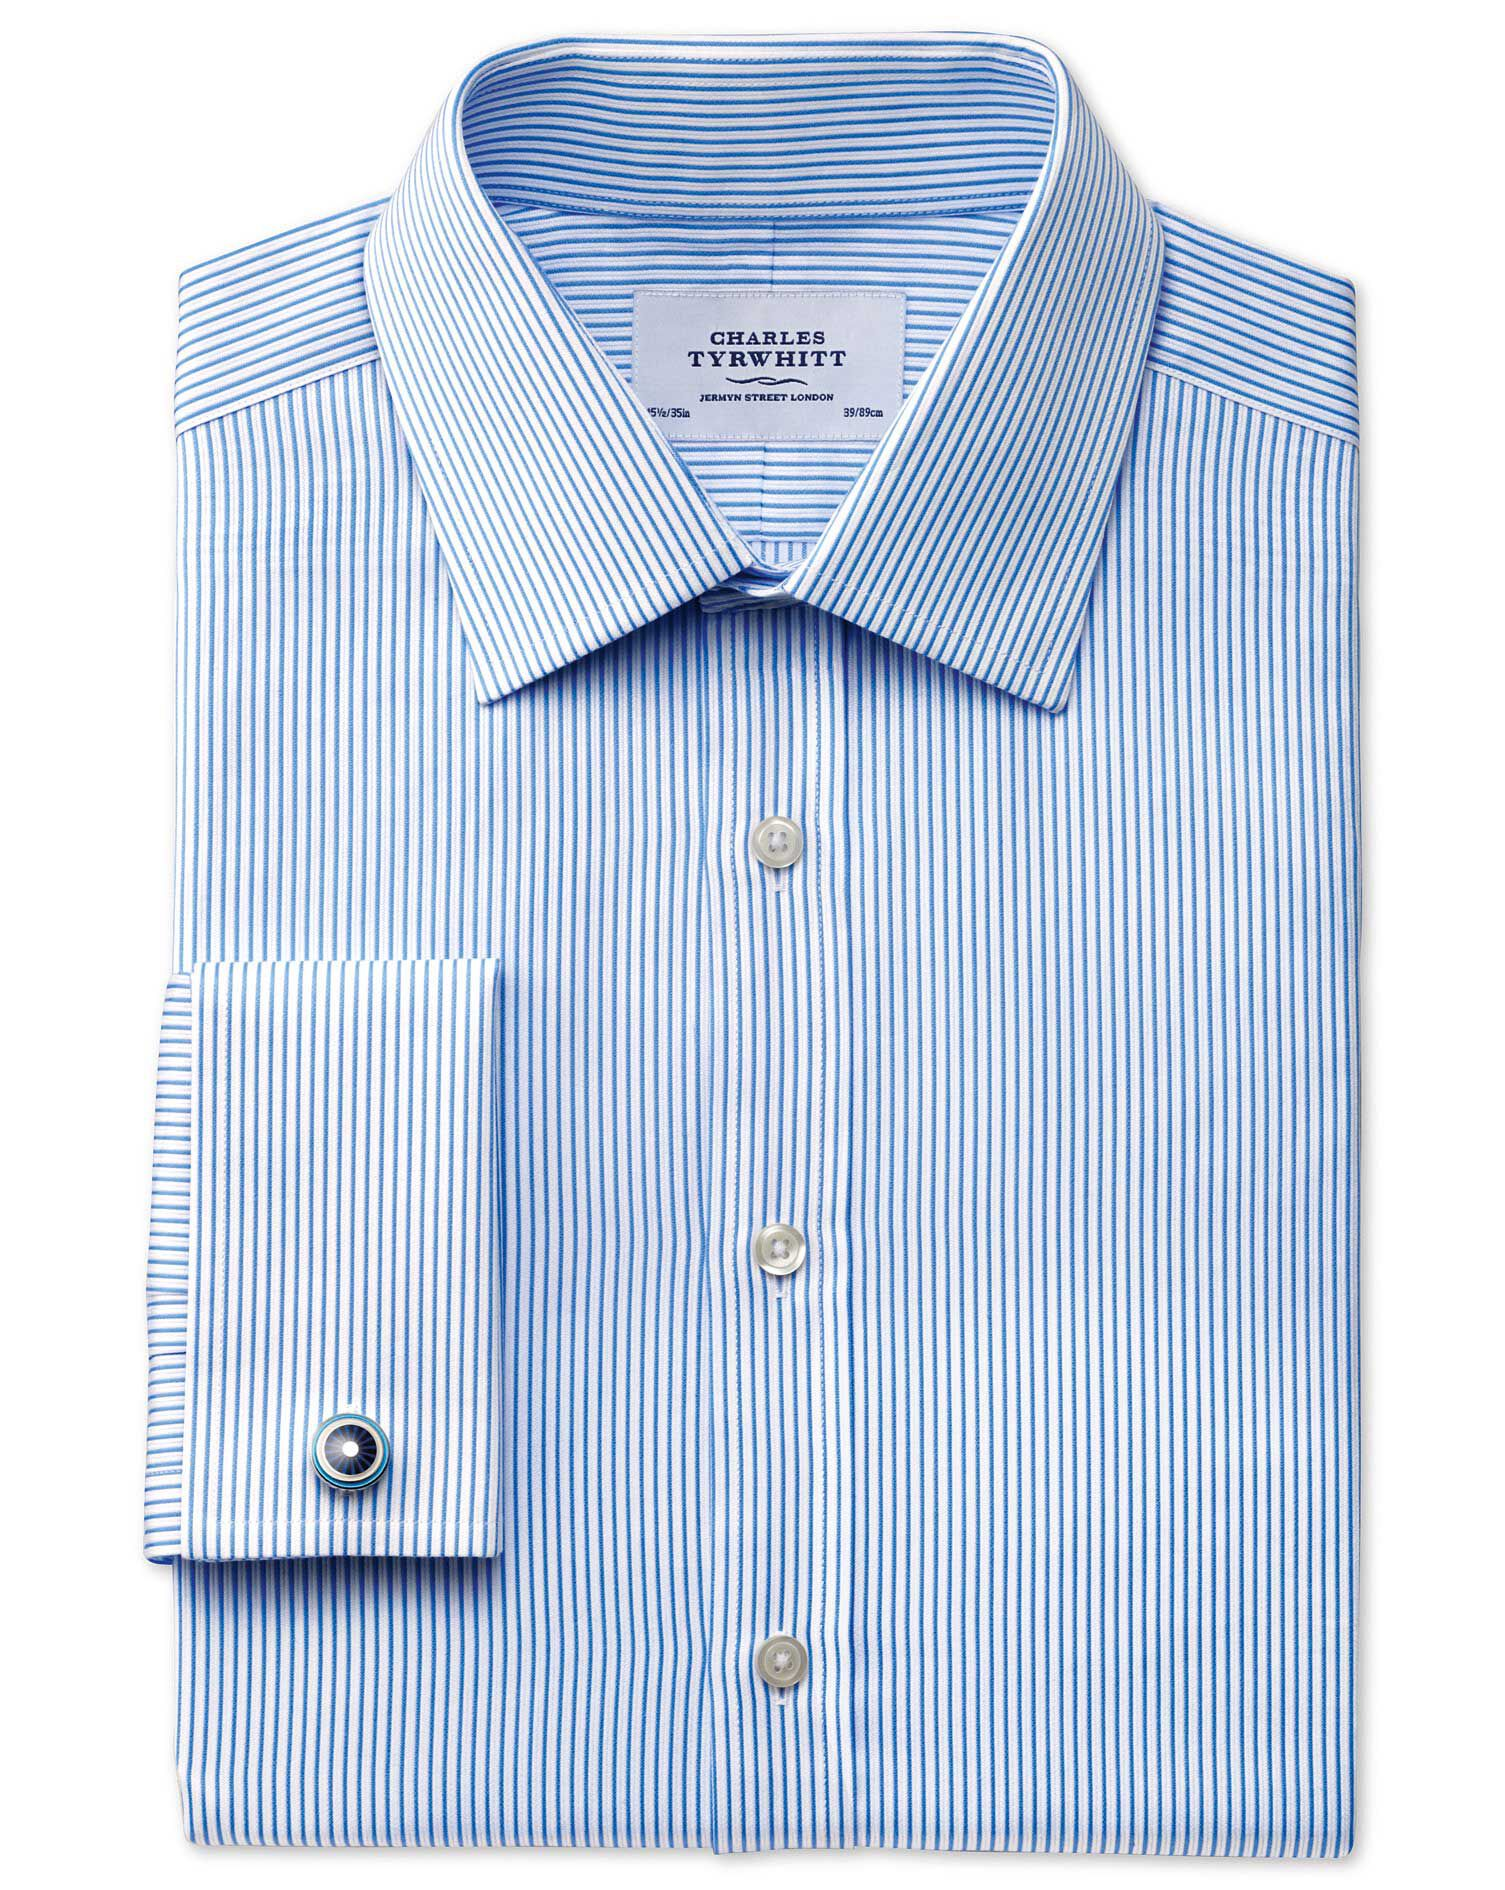 Slim Fit Raised Stripe Sky Blue Cotton Formal Shirt Single Cuff Size 15.5/33 by Charles Tyrwhitt